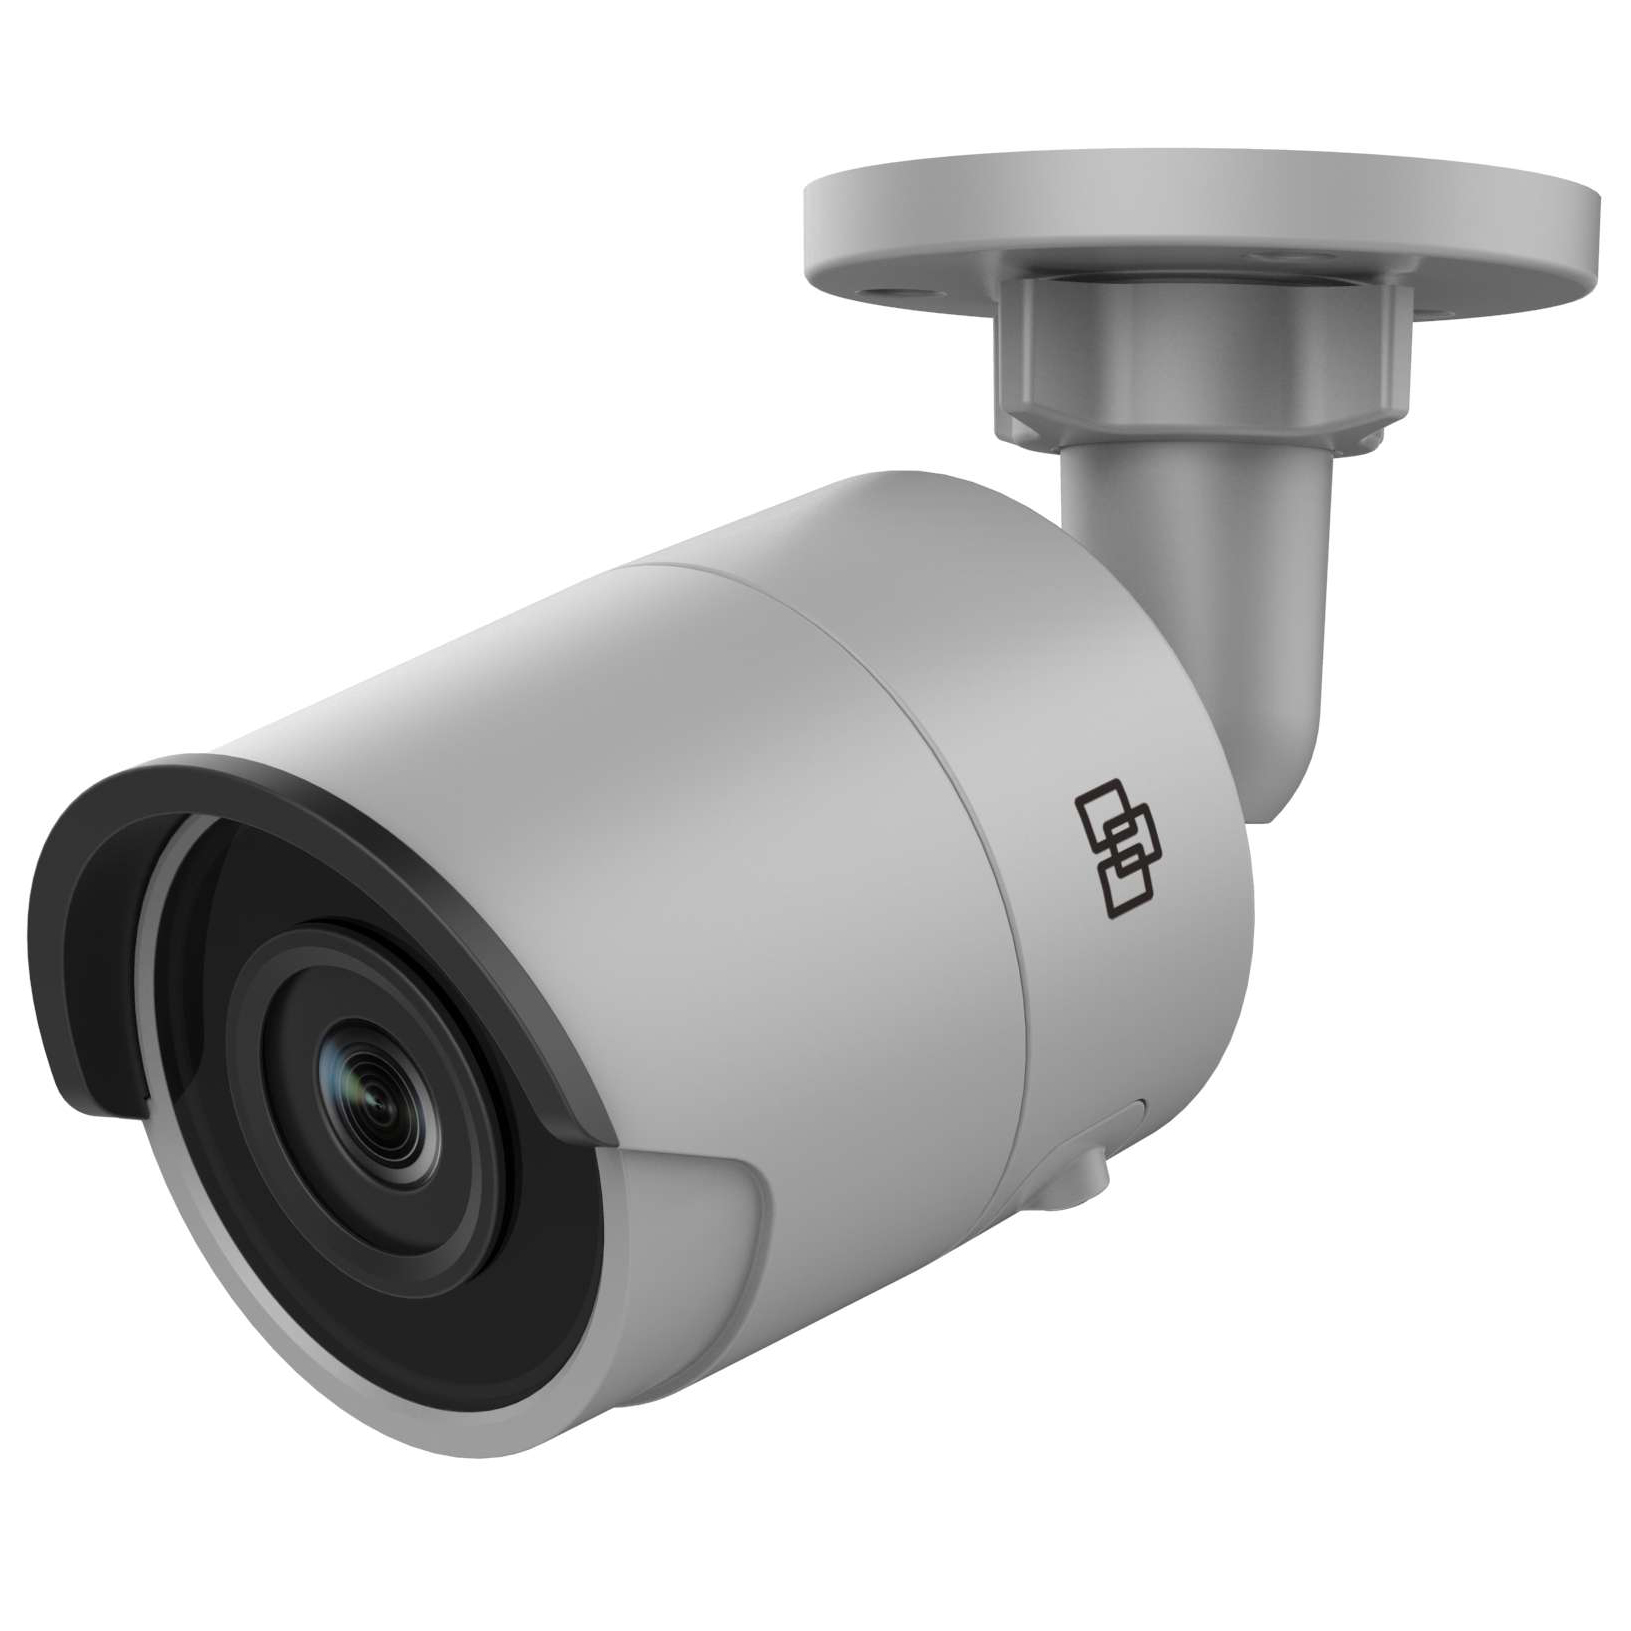 TVB-5502 UTC TruVision 8MPx/4K H.265/H.264 IP Fixed Lens Bullet Camera 4mm True D/N WDR 30M IR Micro SD/SDHC/SDXC Slot PoE (802.3-af)/12VDC IP67